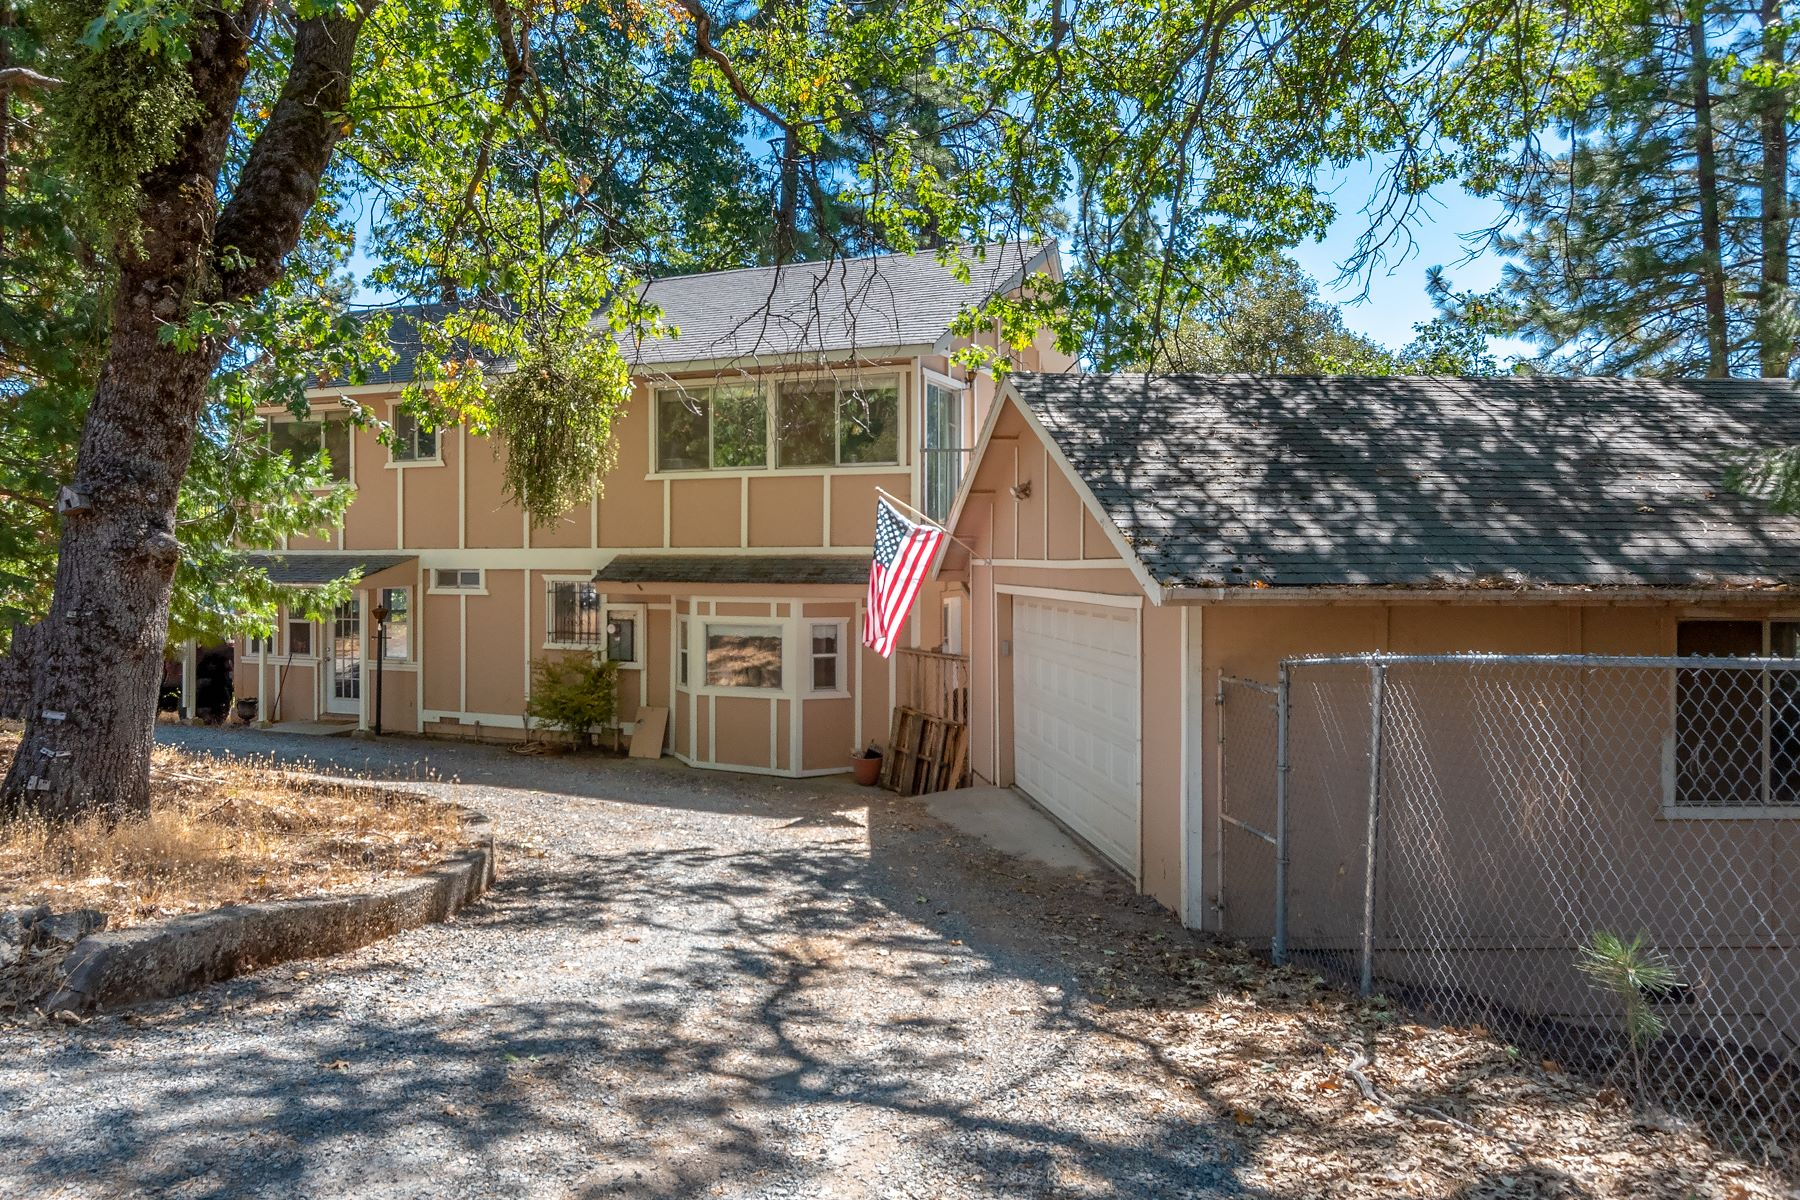 Single Family Home for Active at 5314 Johnson Lane, Placerville, CA 95667 5314 Johnson Lane Placerville, California 95667 United States